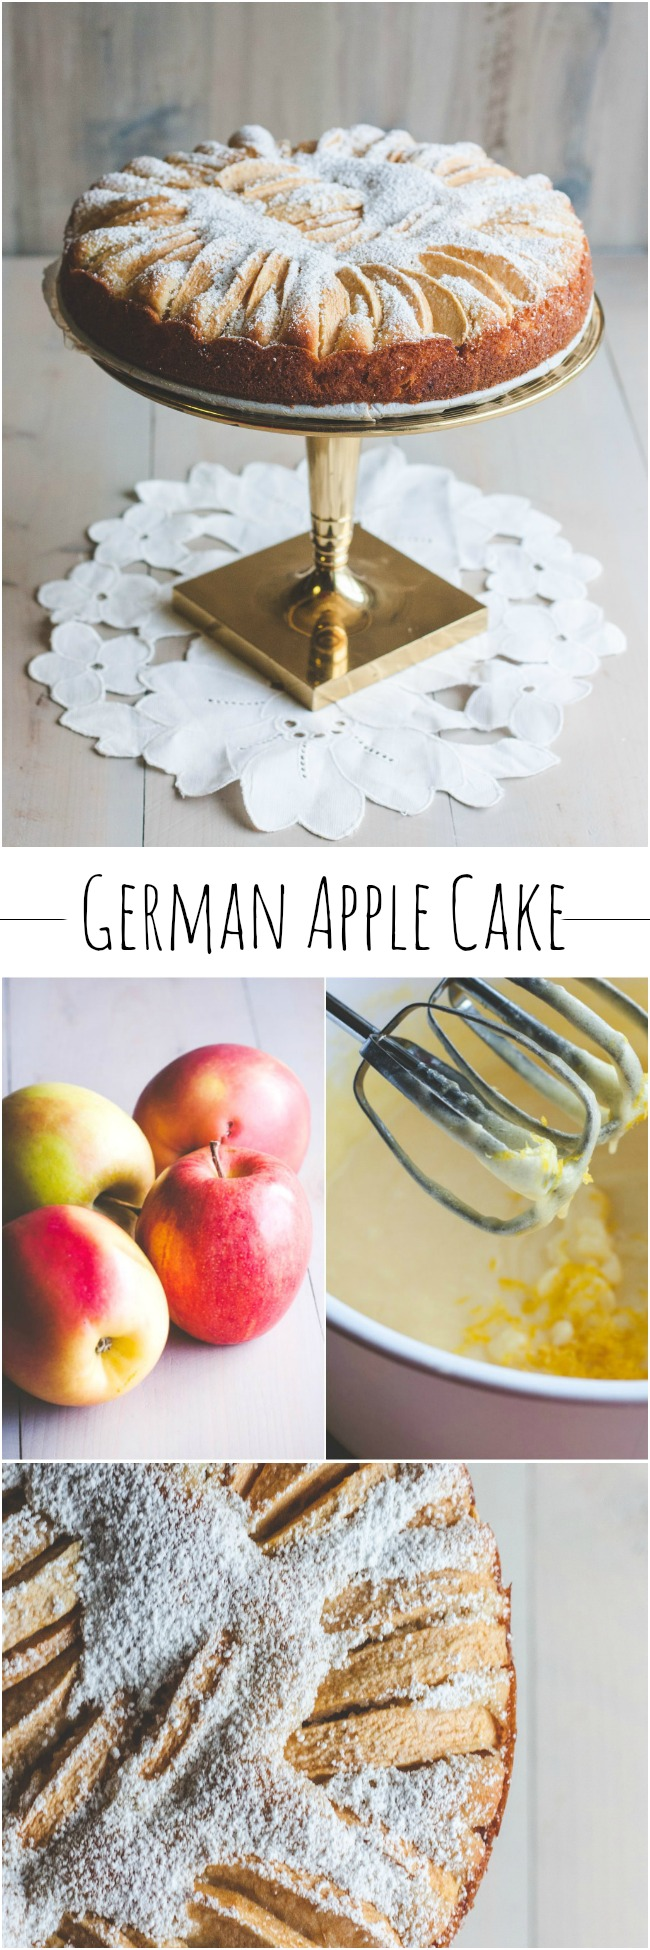 How to make the best German apple cake